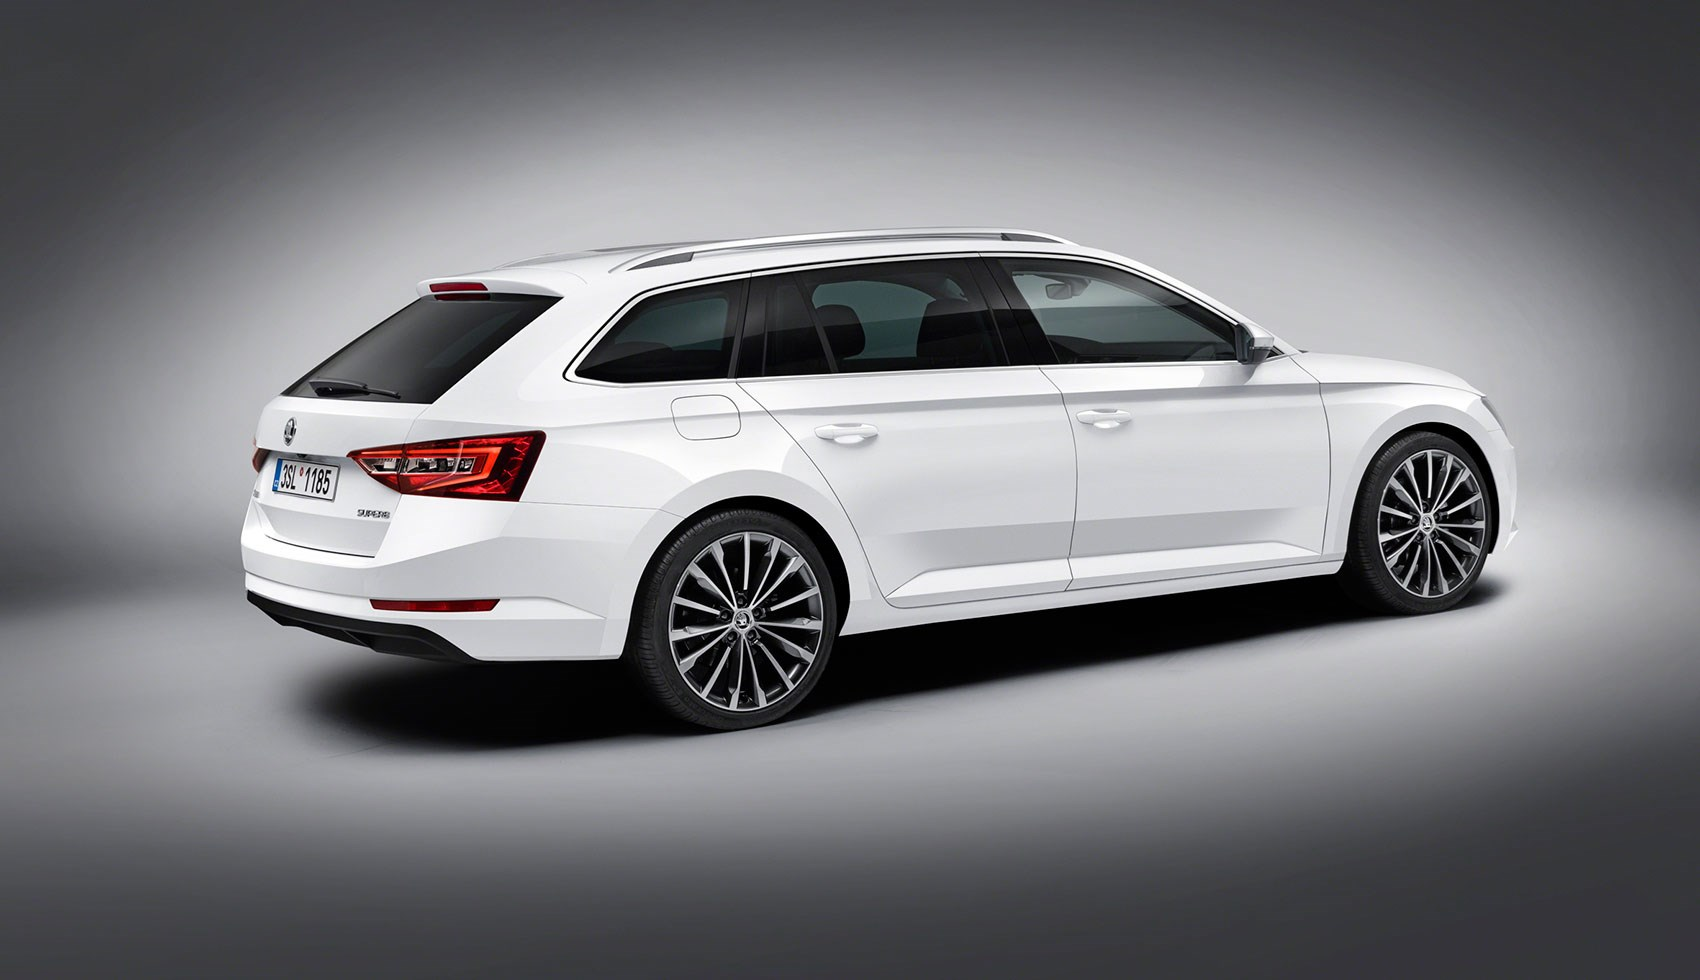 skoda superb estate 2015 priced below 20k perfect for kitchen sink packers by car magazine. Black Bedroom Furniture Sets. Home Design Ideas